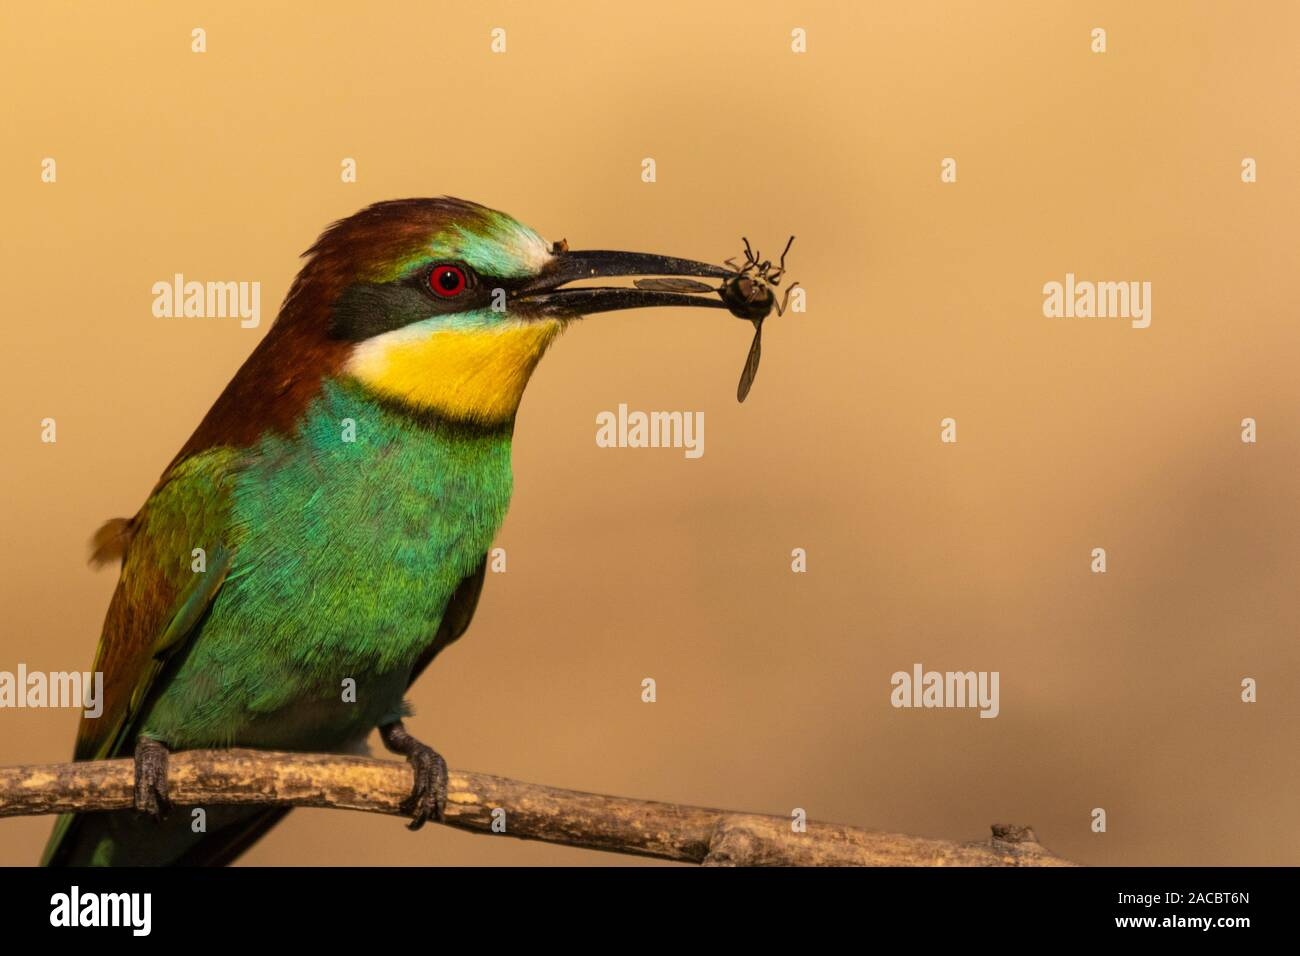 European bee-eater, Merops apiaster, sitting on a stick with an insect in his beak, in nice warm morning light, Csongrad, Hungary Stock Photo